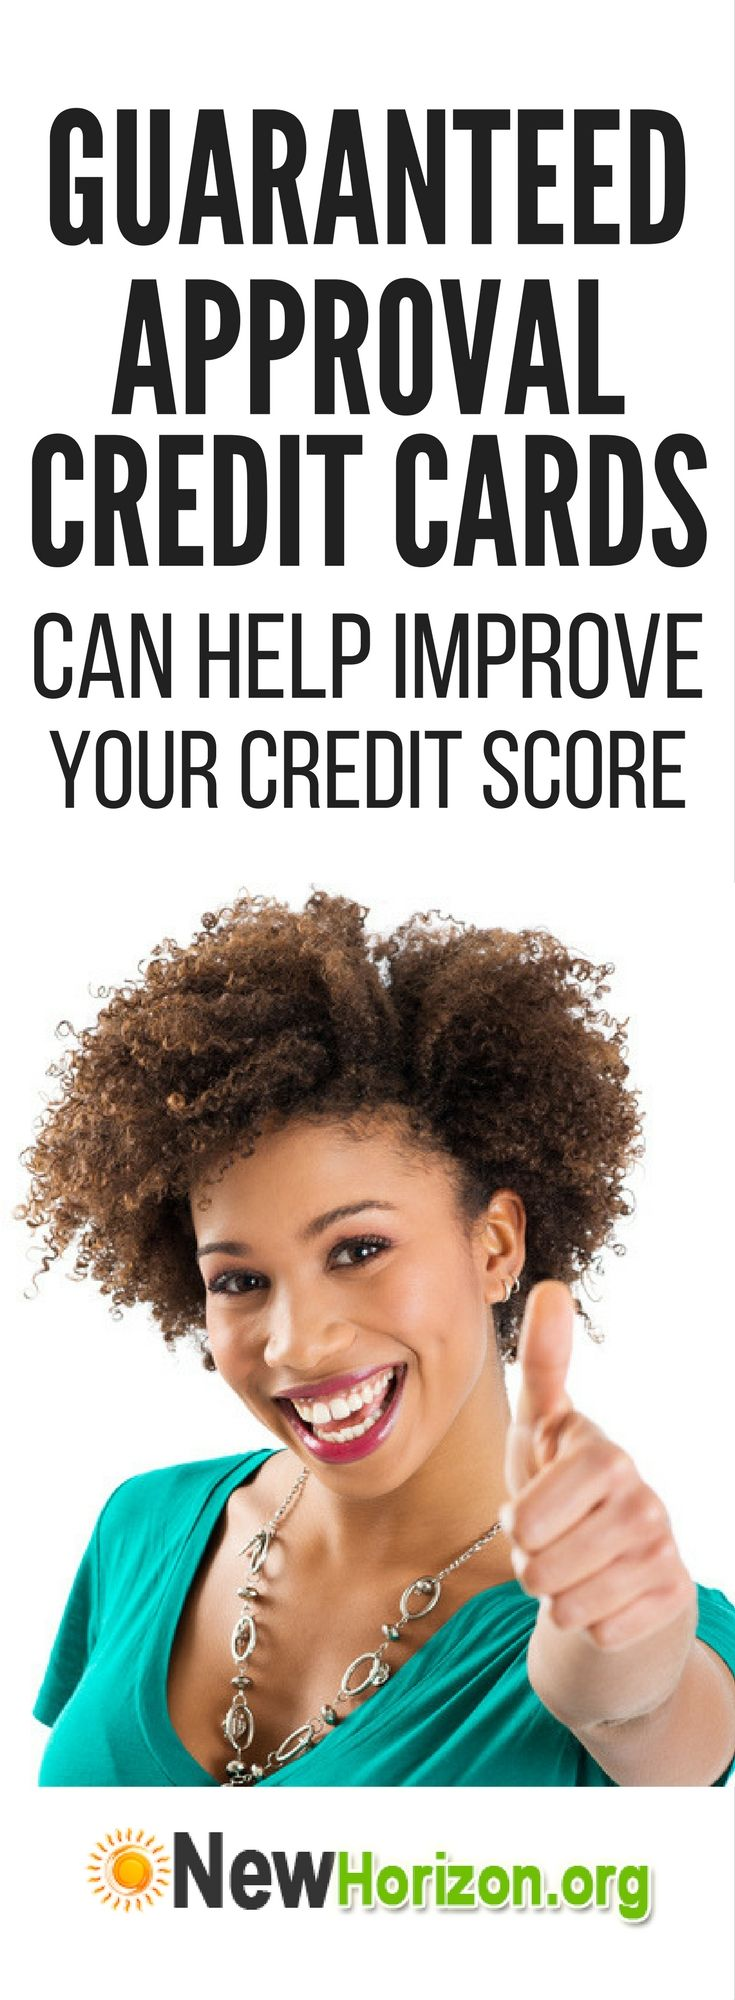 How Guaranteed Approval Credit Cards Can Help Improve Your Credit Score